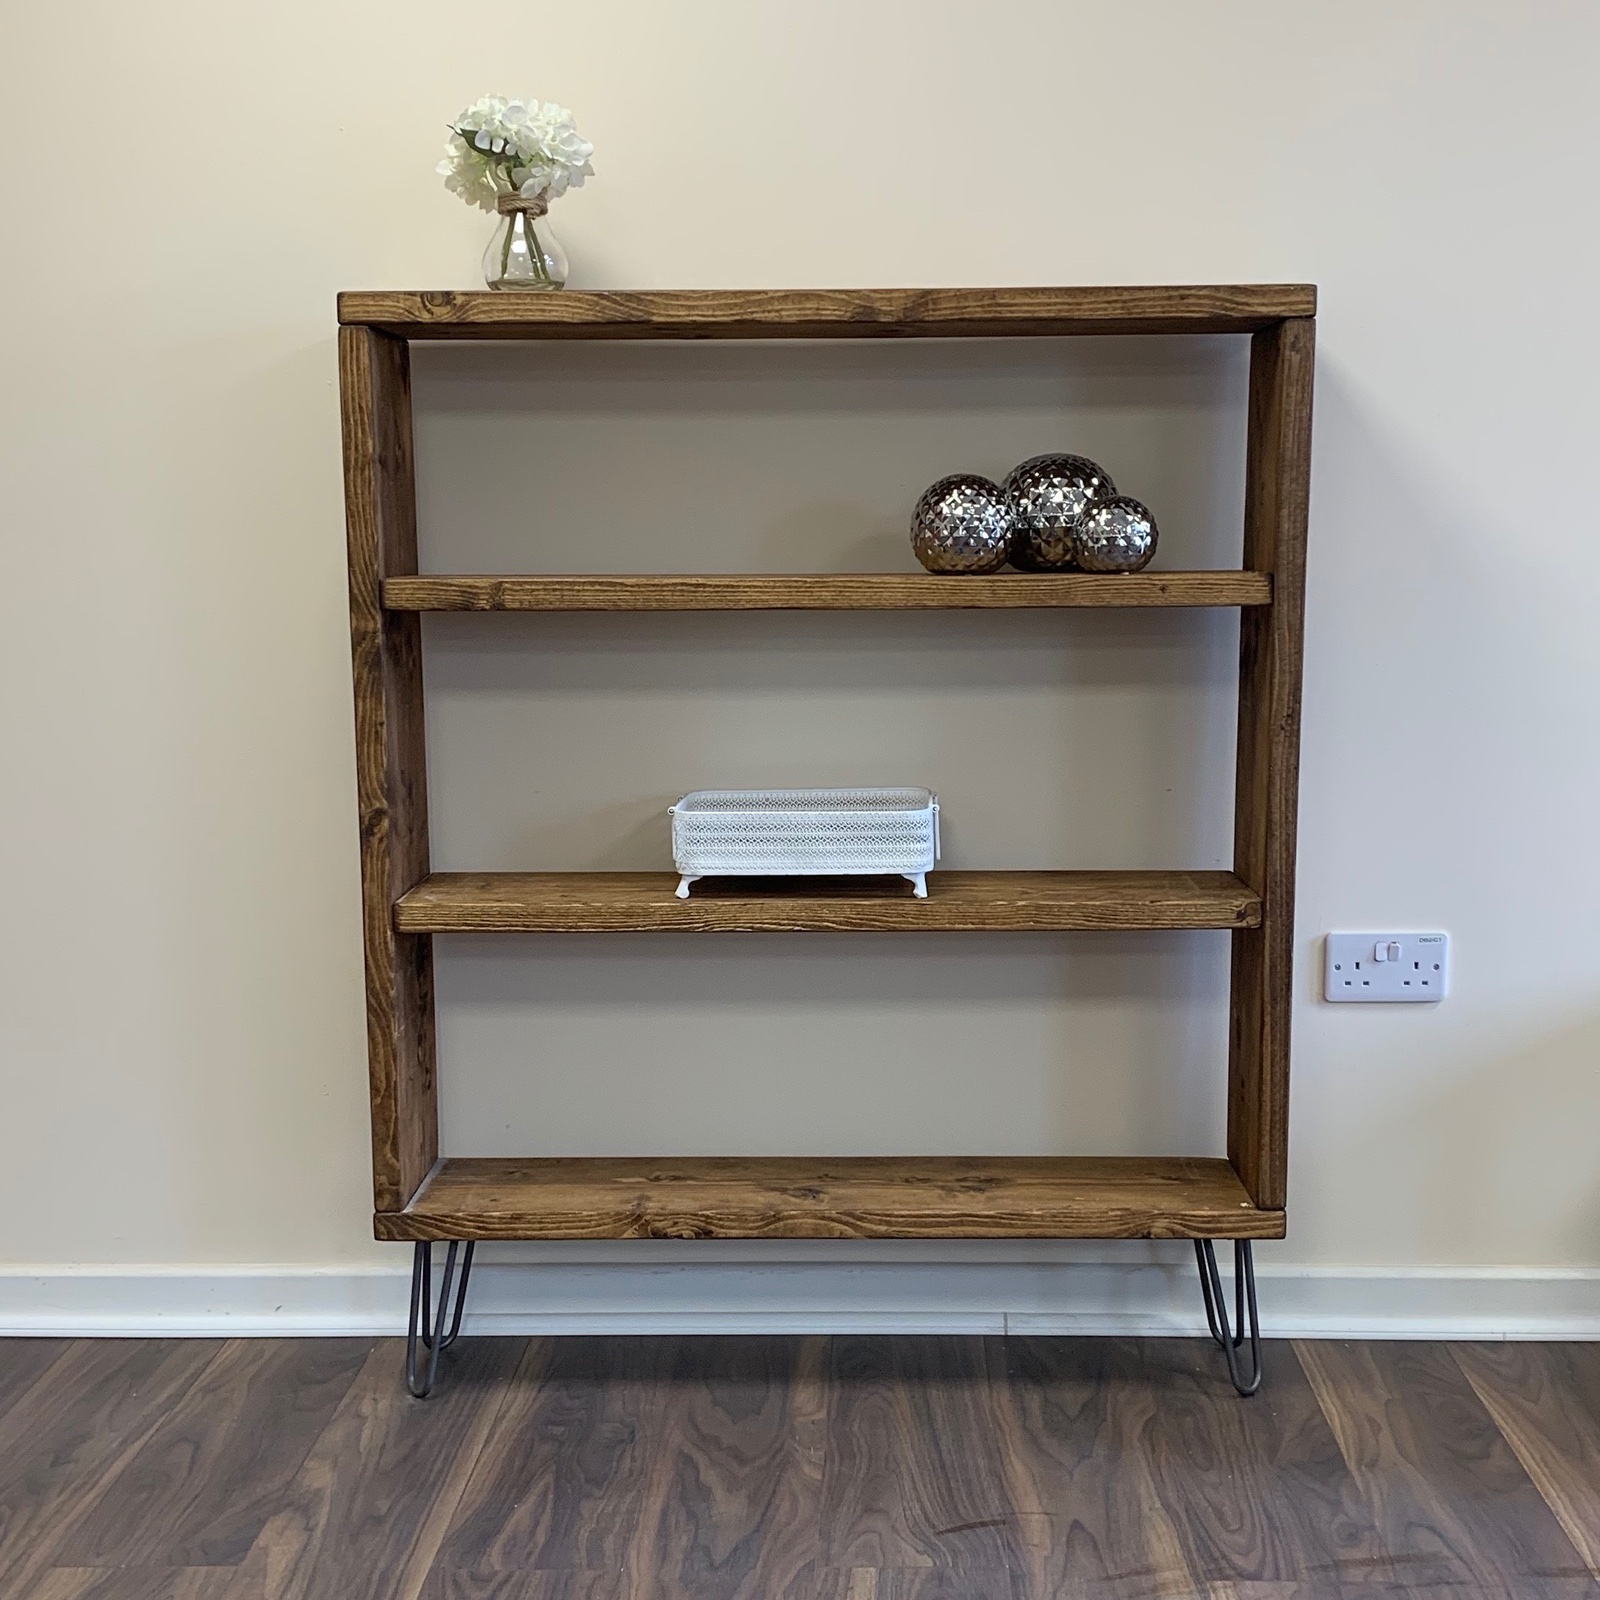 Details About Industrial Bookcase Chic Shelving Unit Room Divider Retro Display Shelves